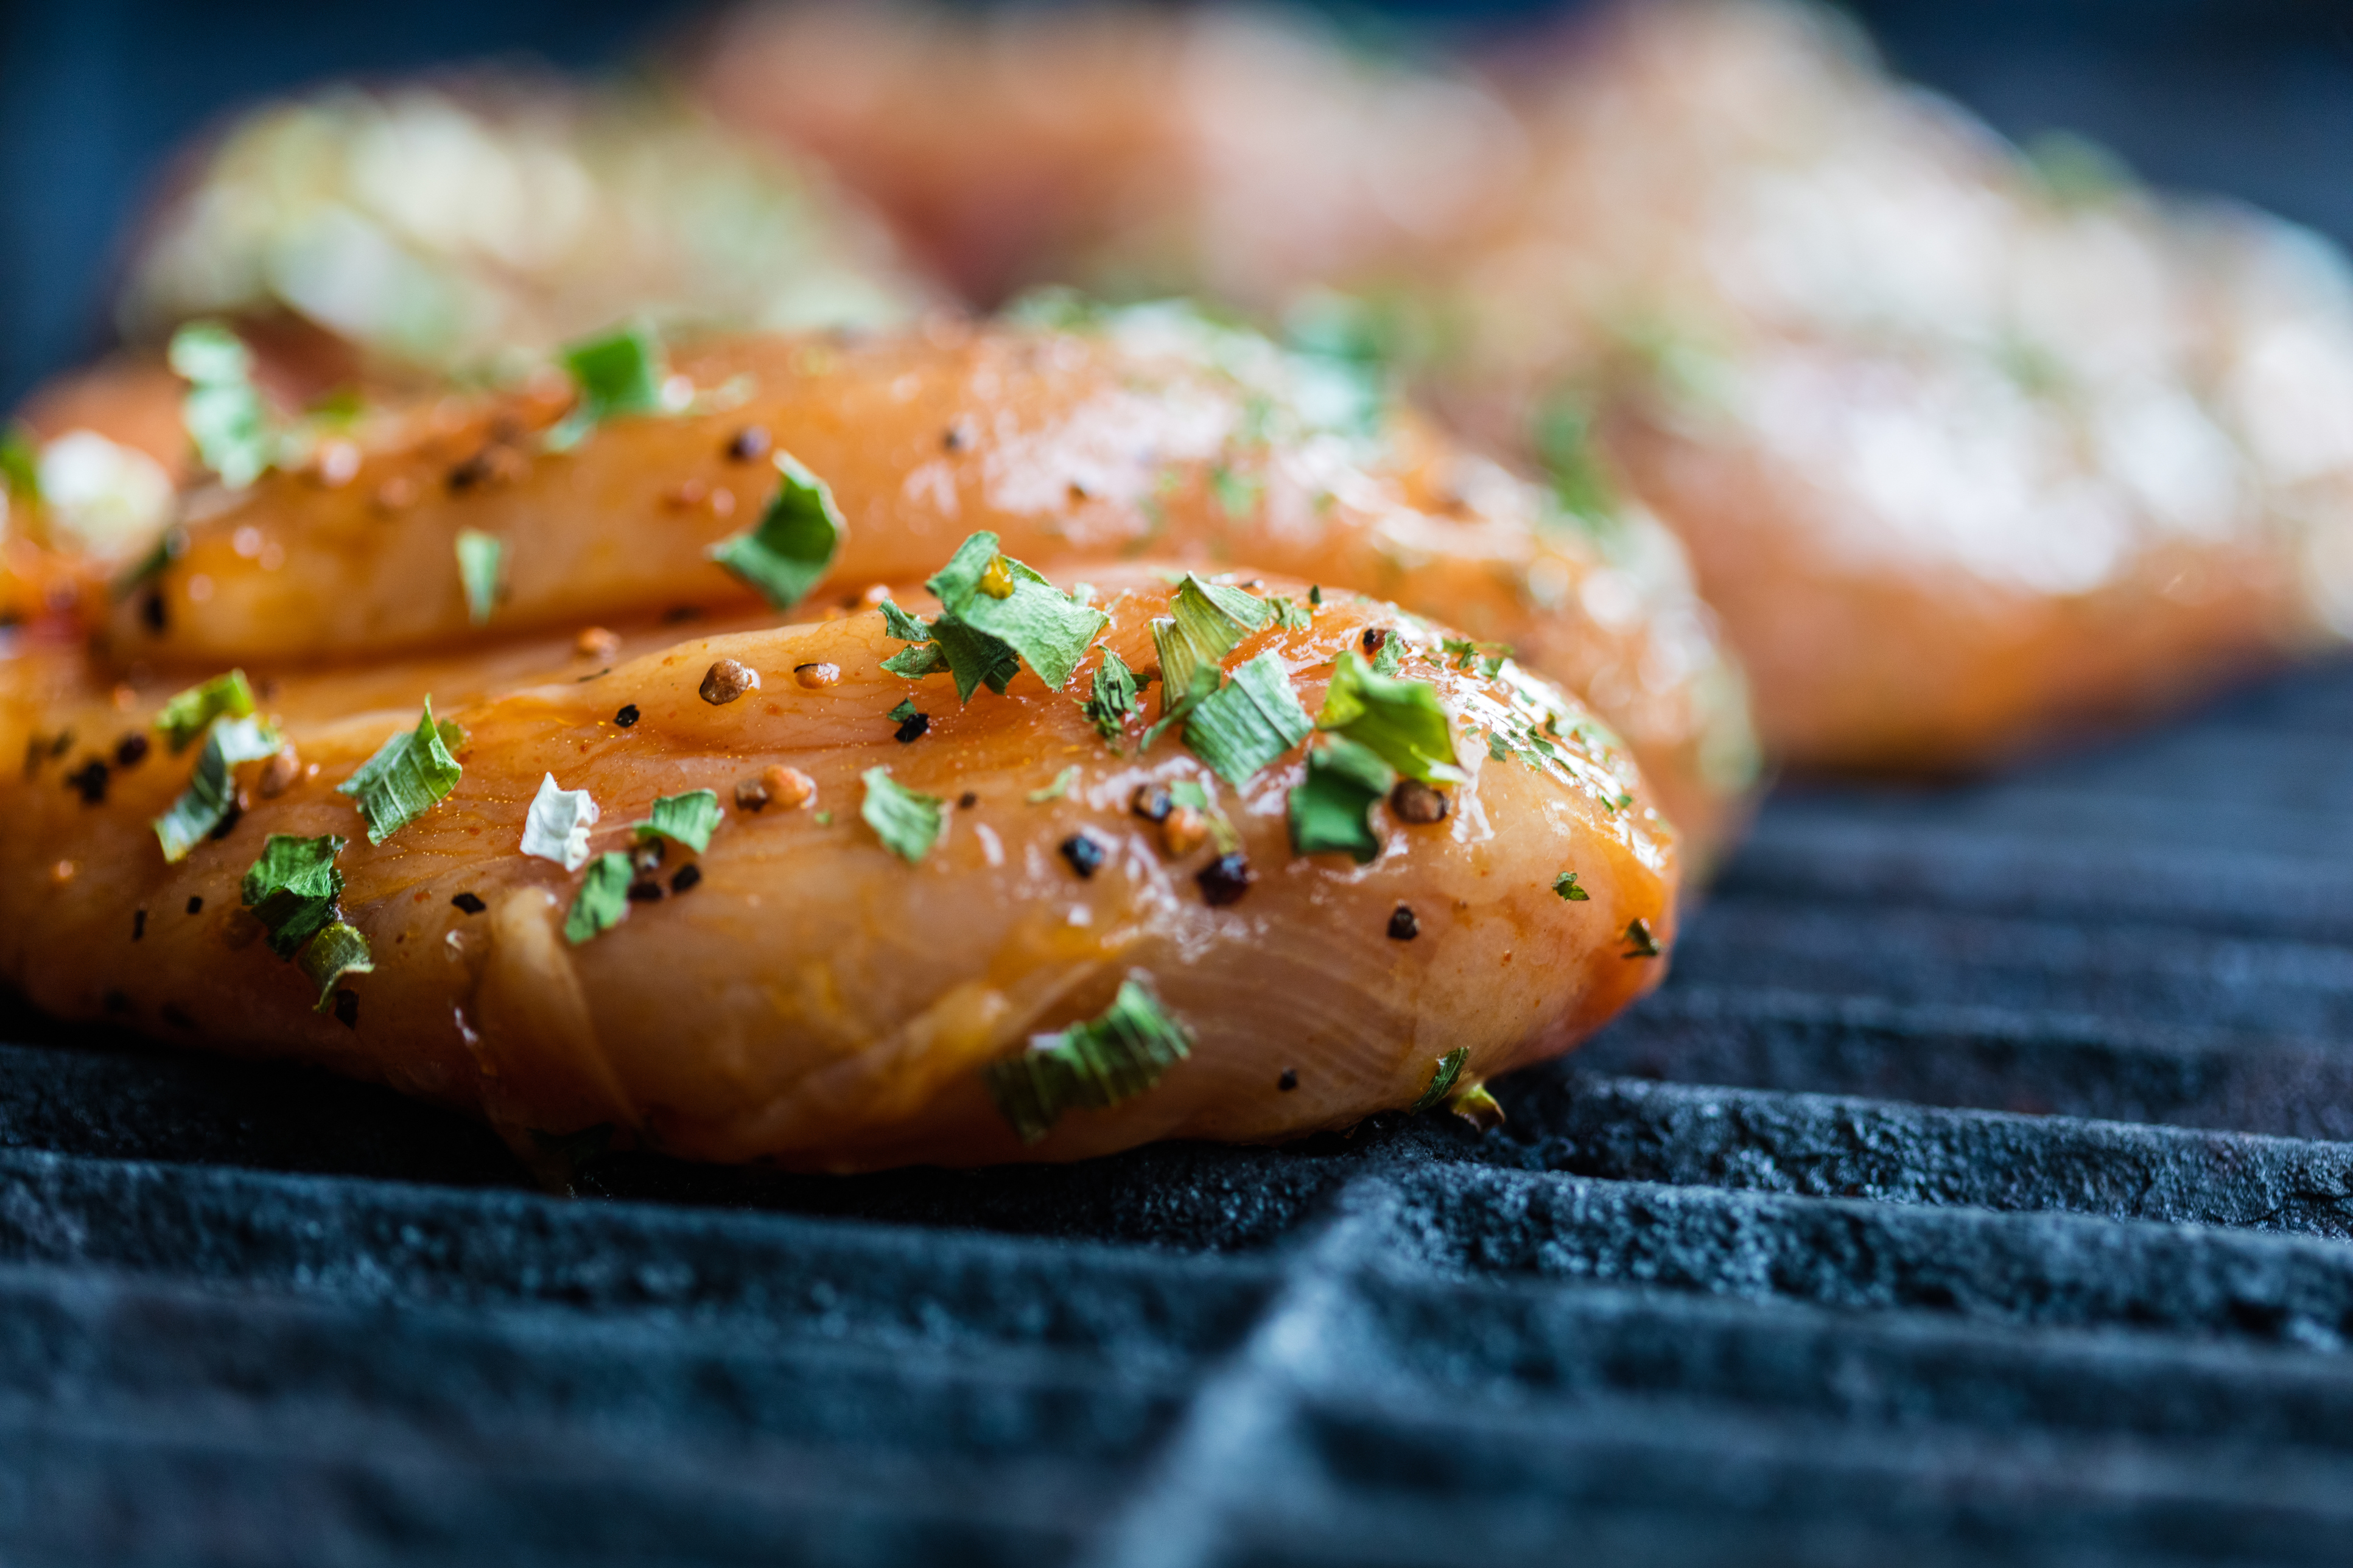 Raw marinated chicken breasts cooking on the BBQ grill.